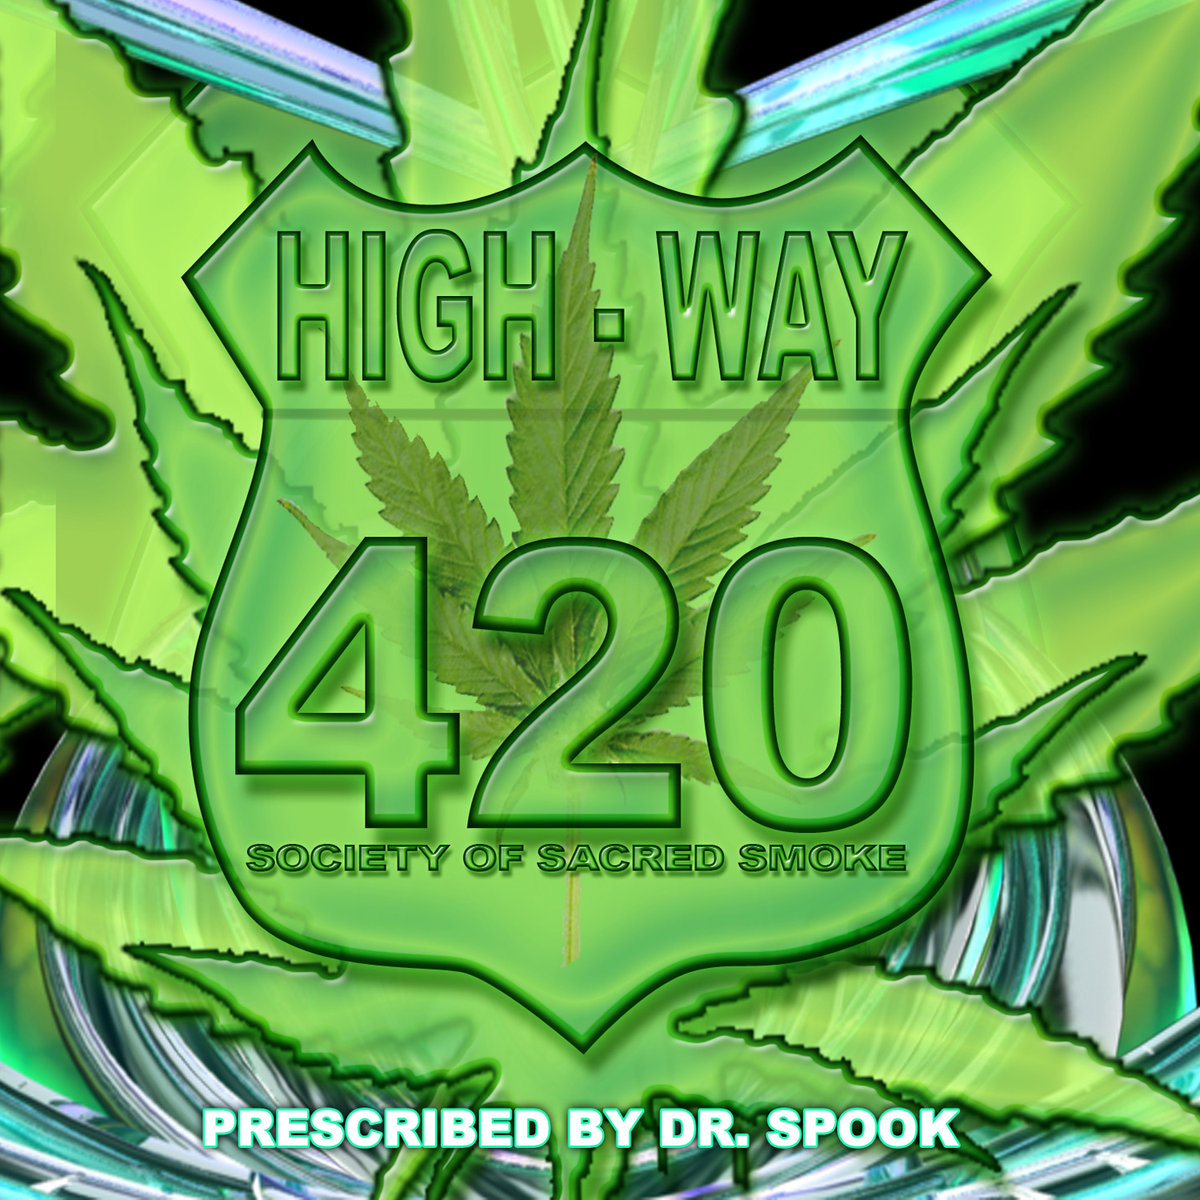 Earthling vs. Phoenix Family - Killer Dope (Chromatone Rmx) @ 'Various Artists - High-Way 420: Society Of Sacred Smoke (Prescribed by Dr. Spook)' album (electronic, goa)